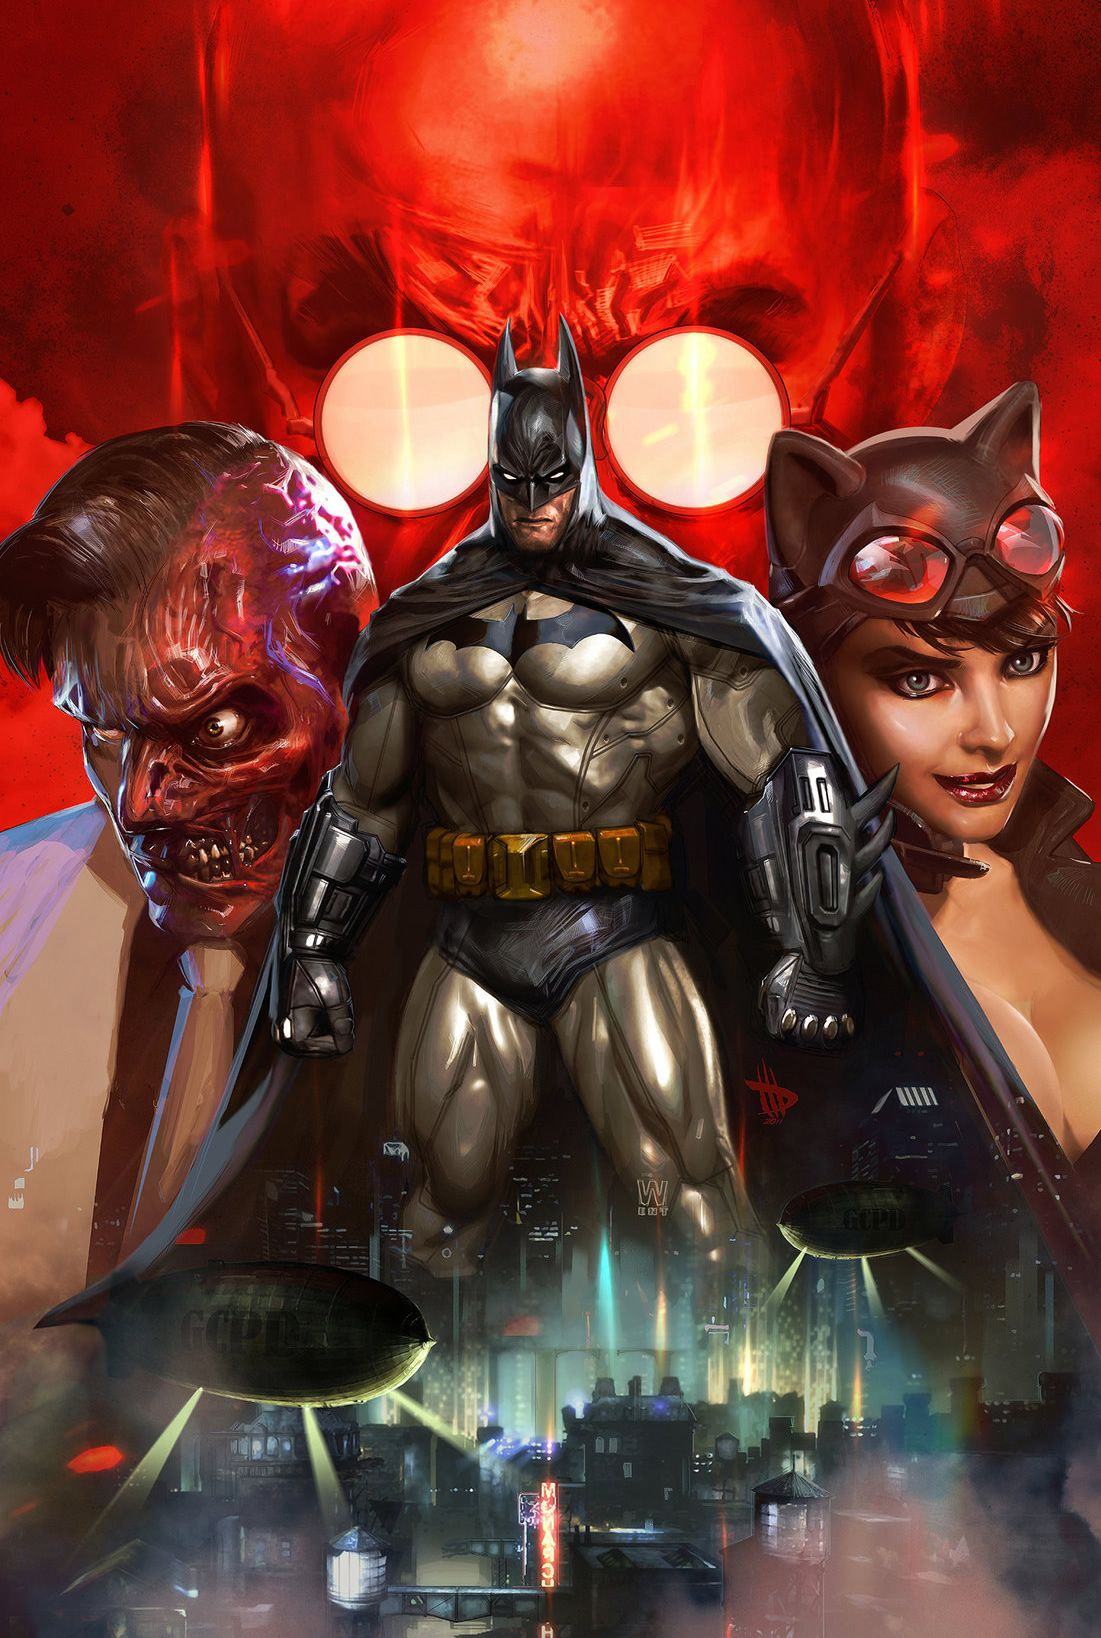 Batman, Two-Face & Catwoman by Dave Wilkins